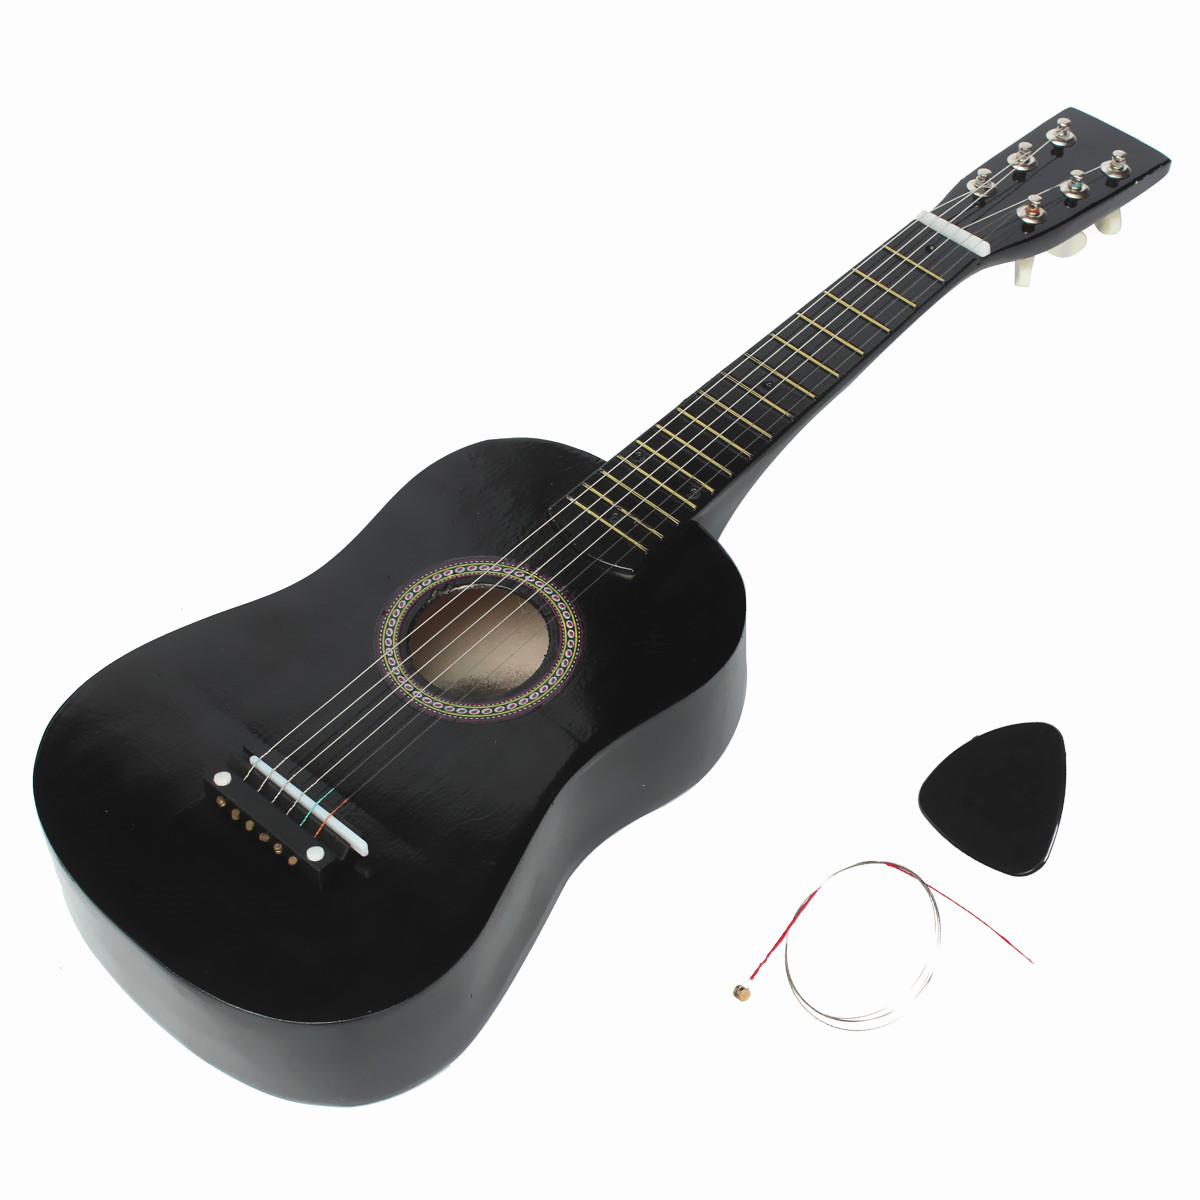 hot new beginners black basswood acoustic guitar with guitar pick wire strings 11street. Black Bedroom Furniture Sets. Home Design Ideas